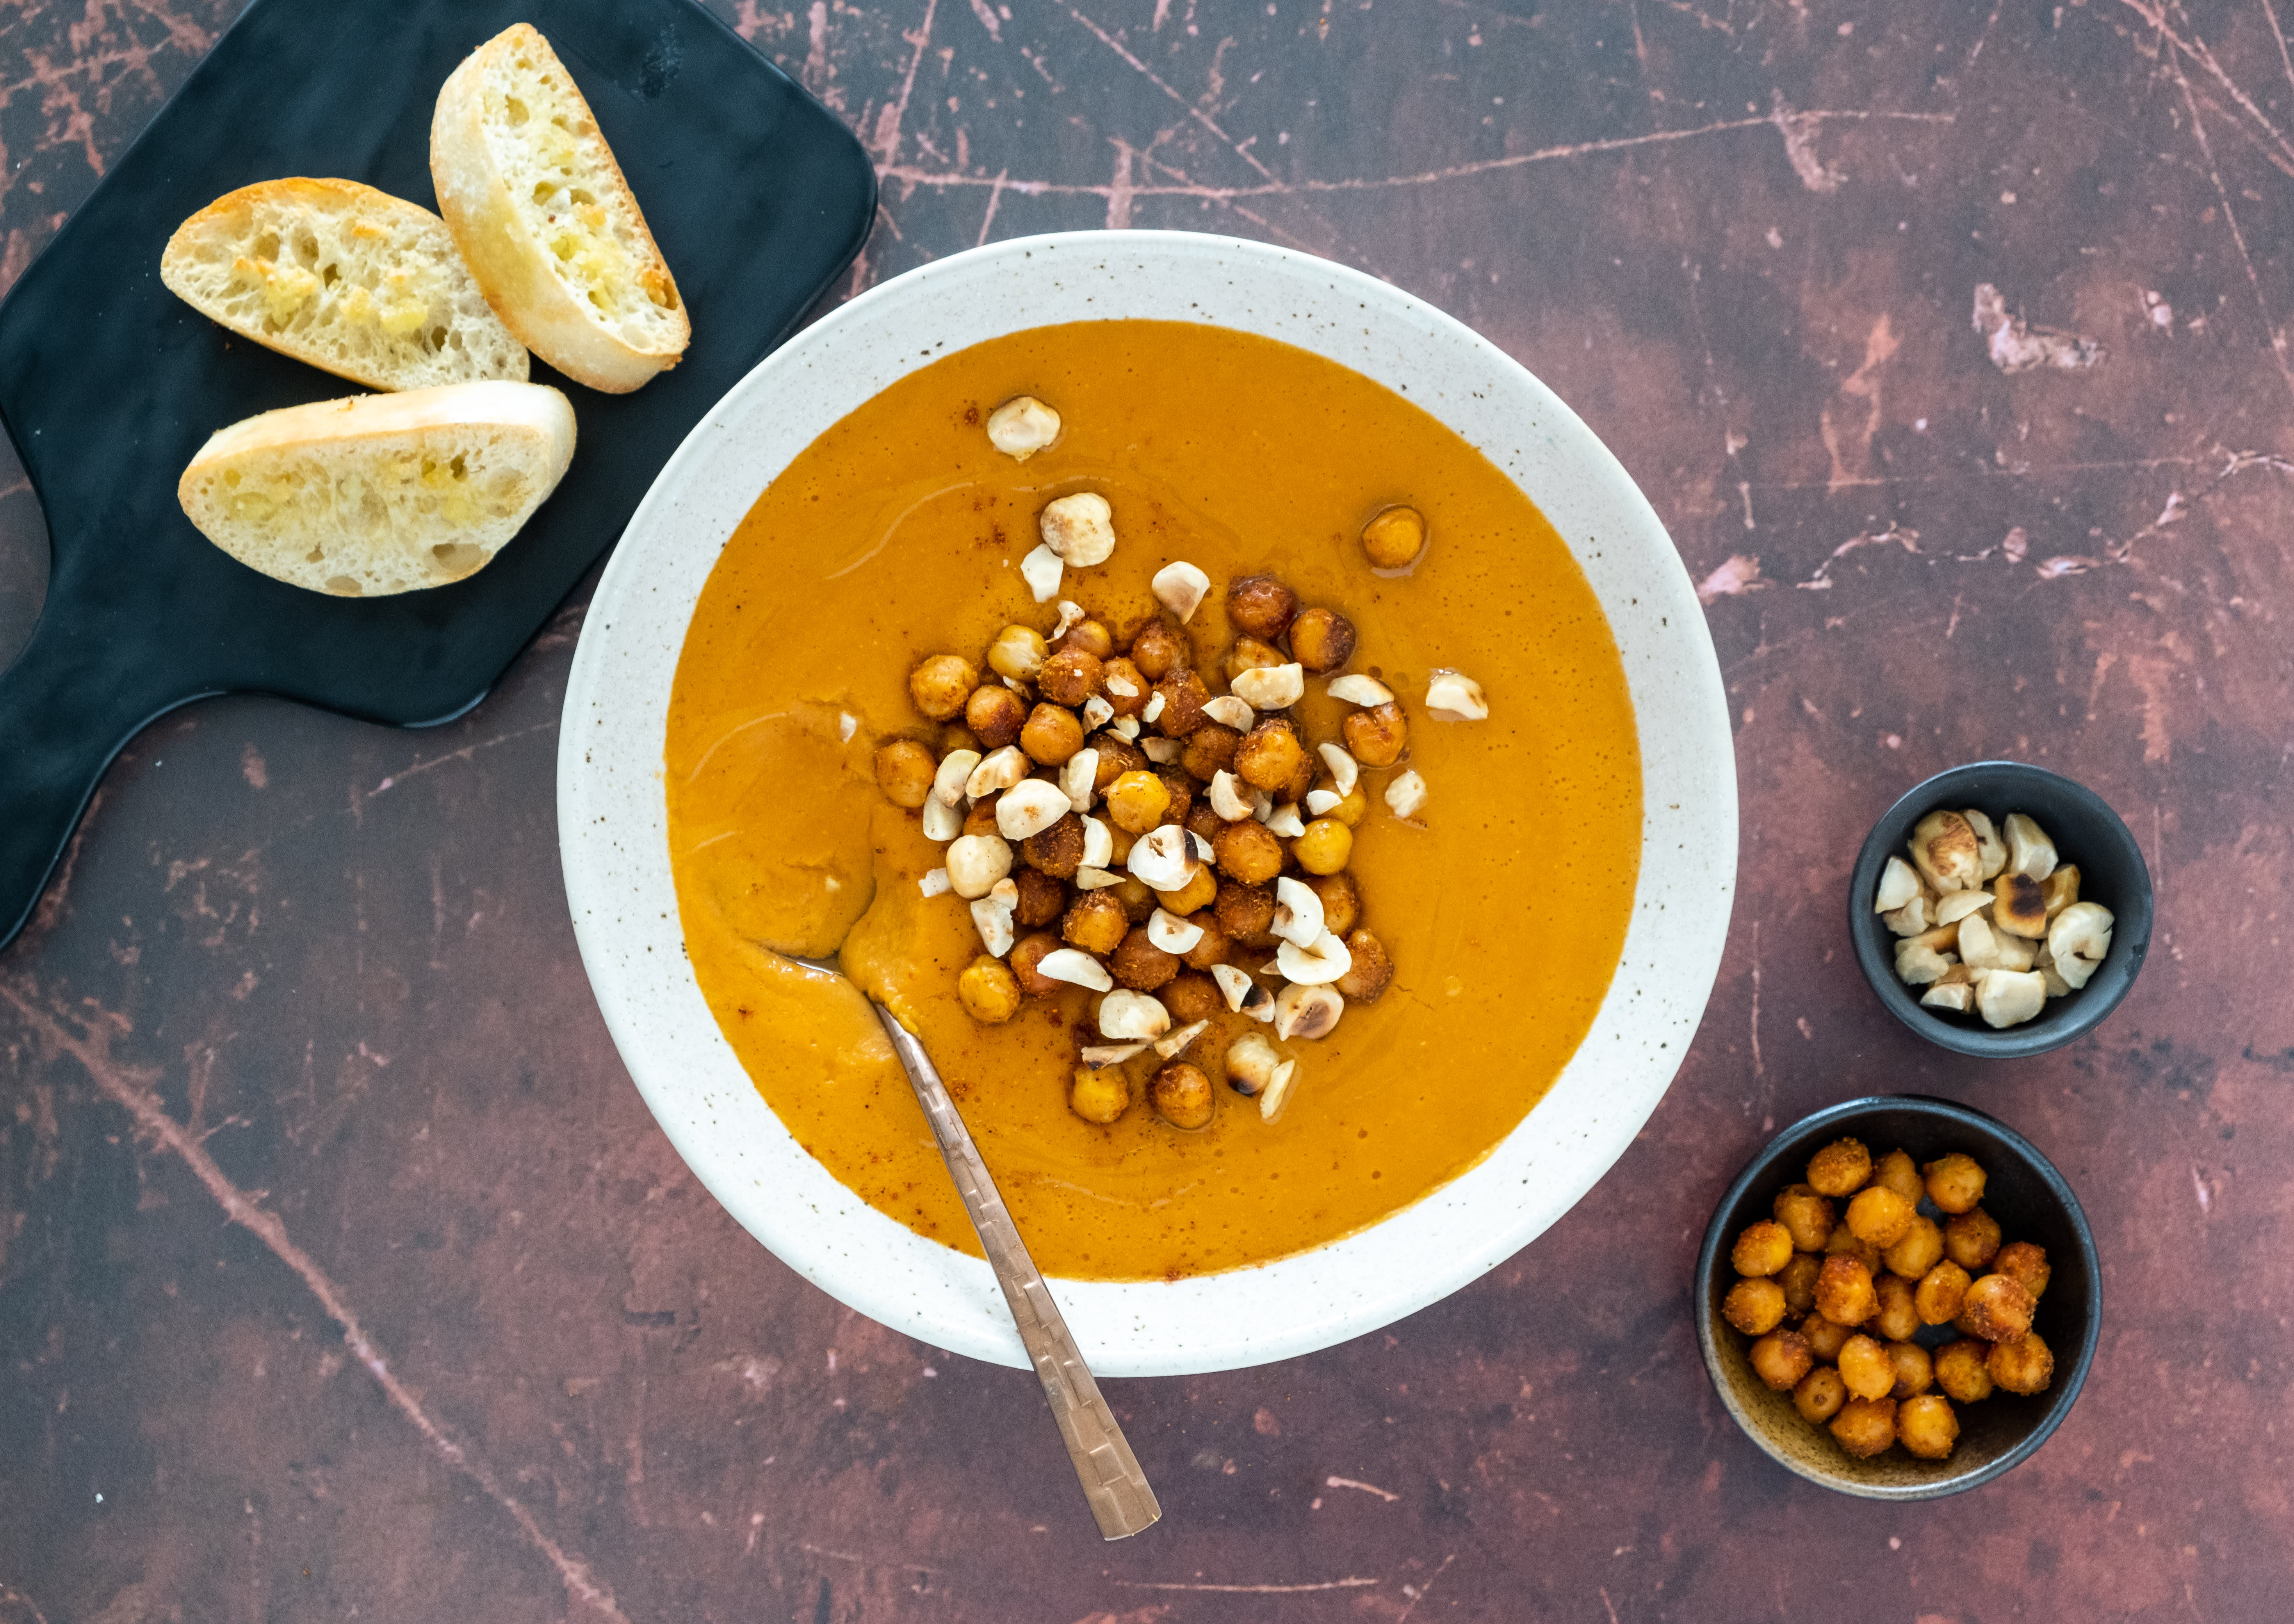 Fiery Red Curry Lentil Soup with Crispy Chickpeas and Hazelnuts